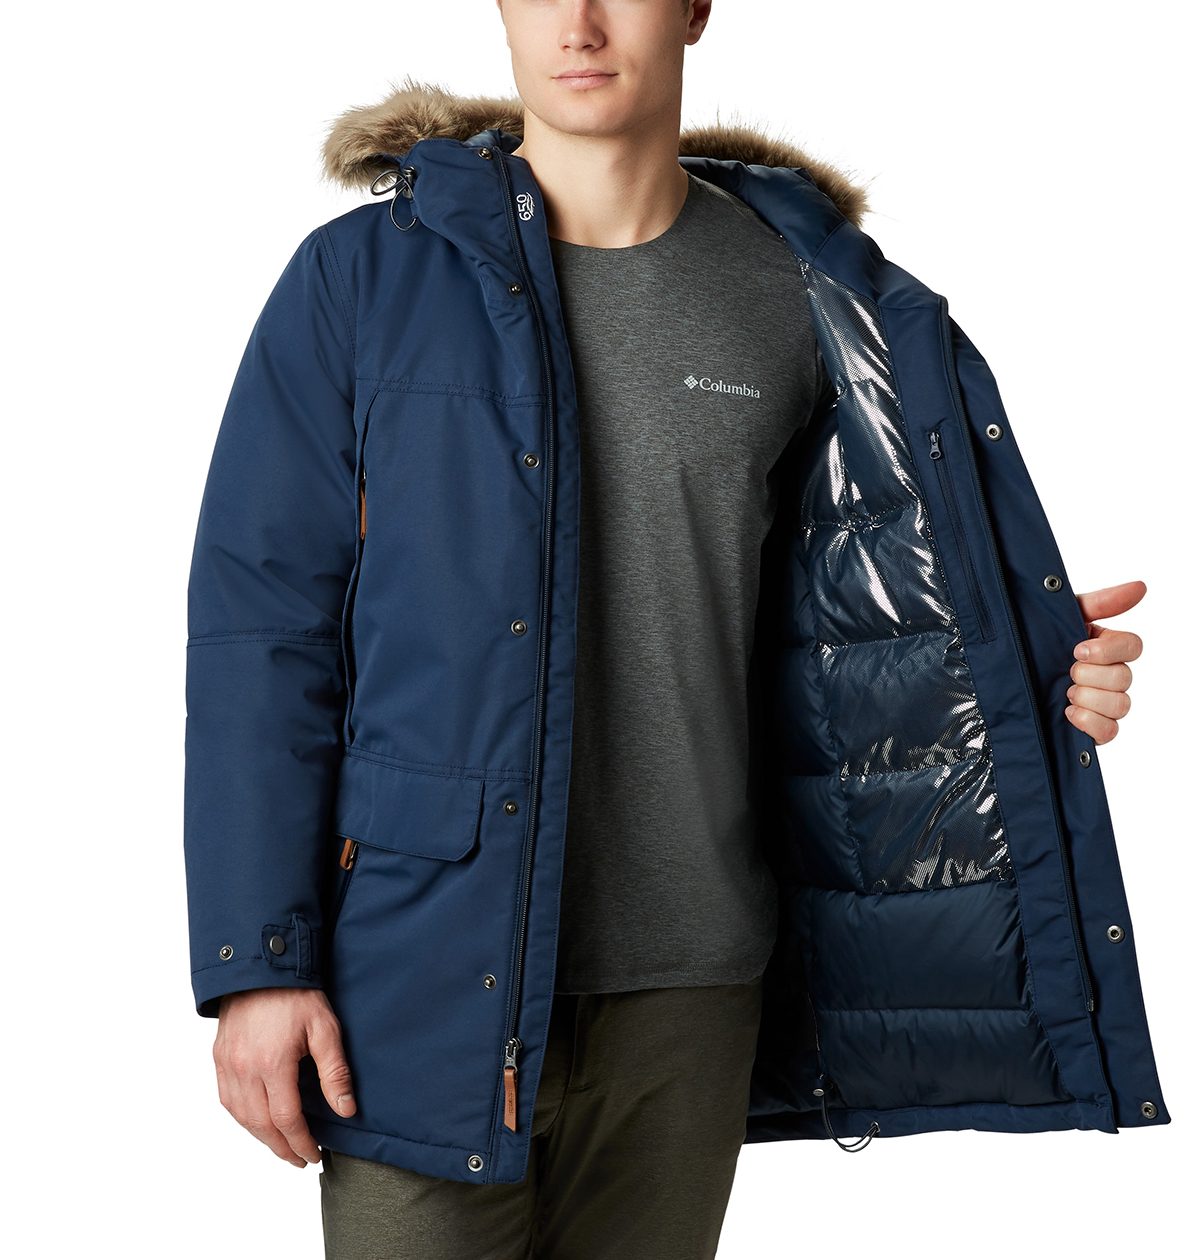 Columbia-Sportswear-South-Canyon-Down-Jacket-Big-Tall-BigCamo-Navy-Detail